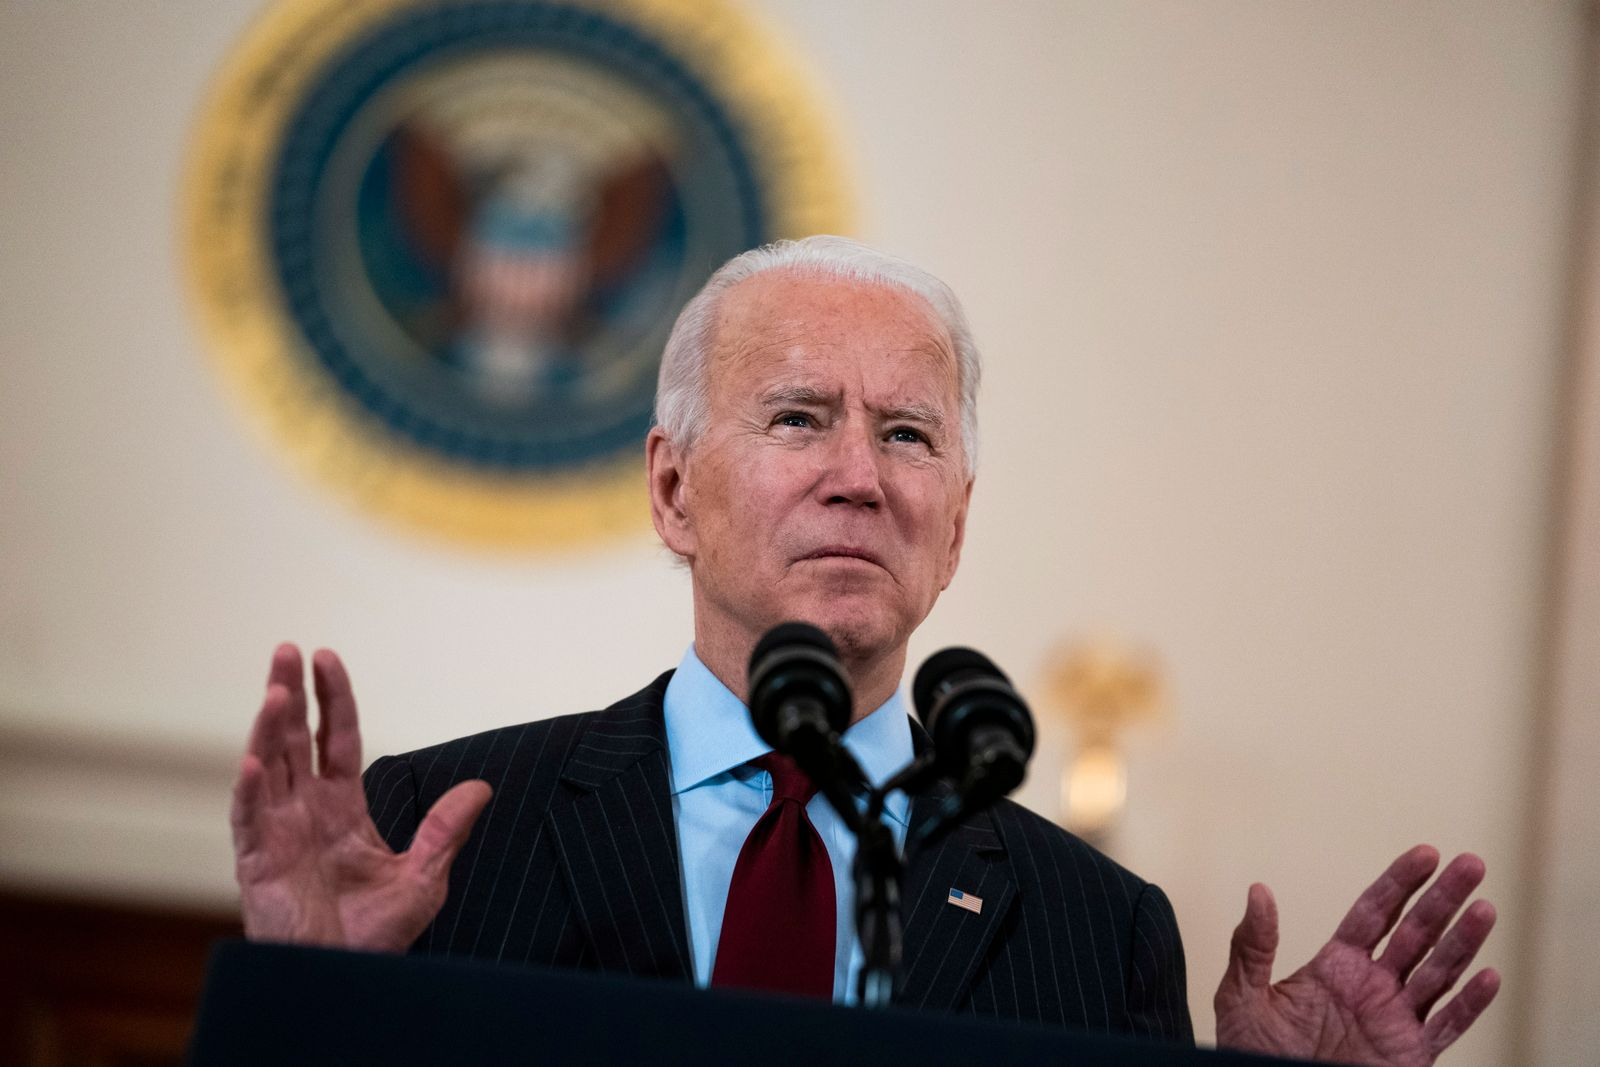 Biden delivers remarks on the lives lost to COVID-19